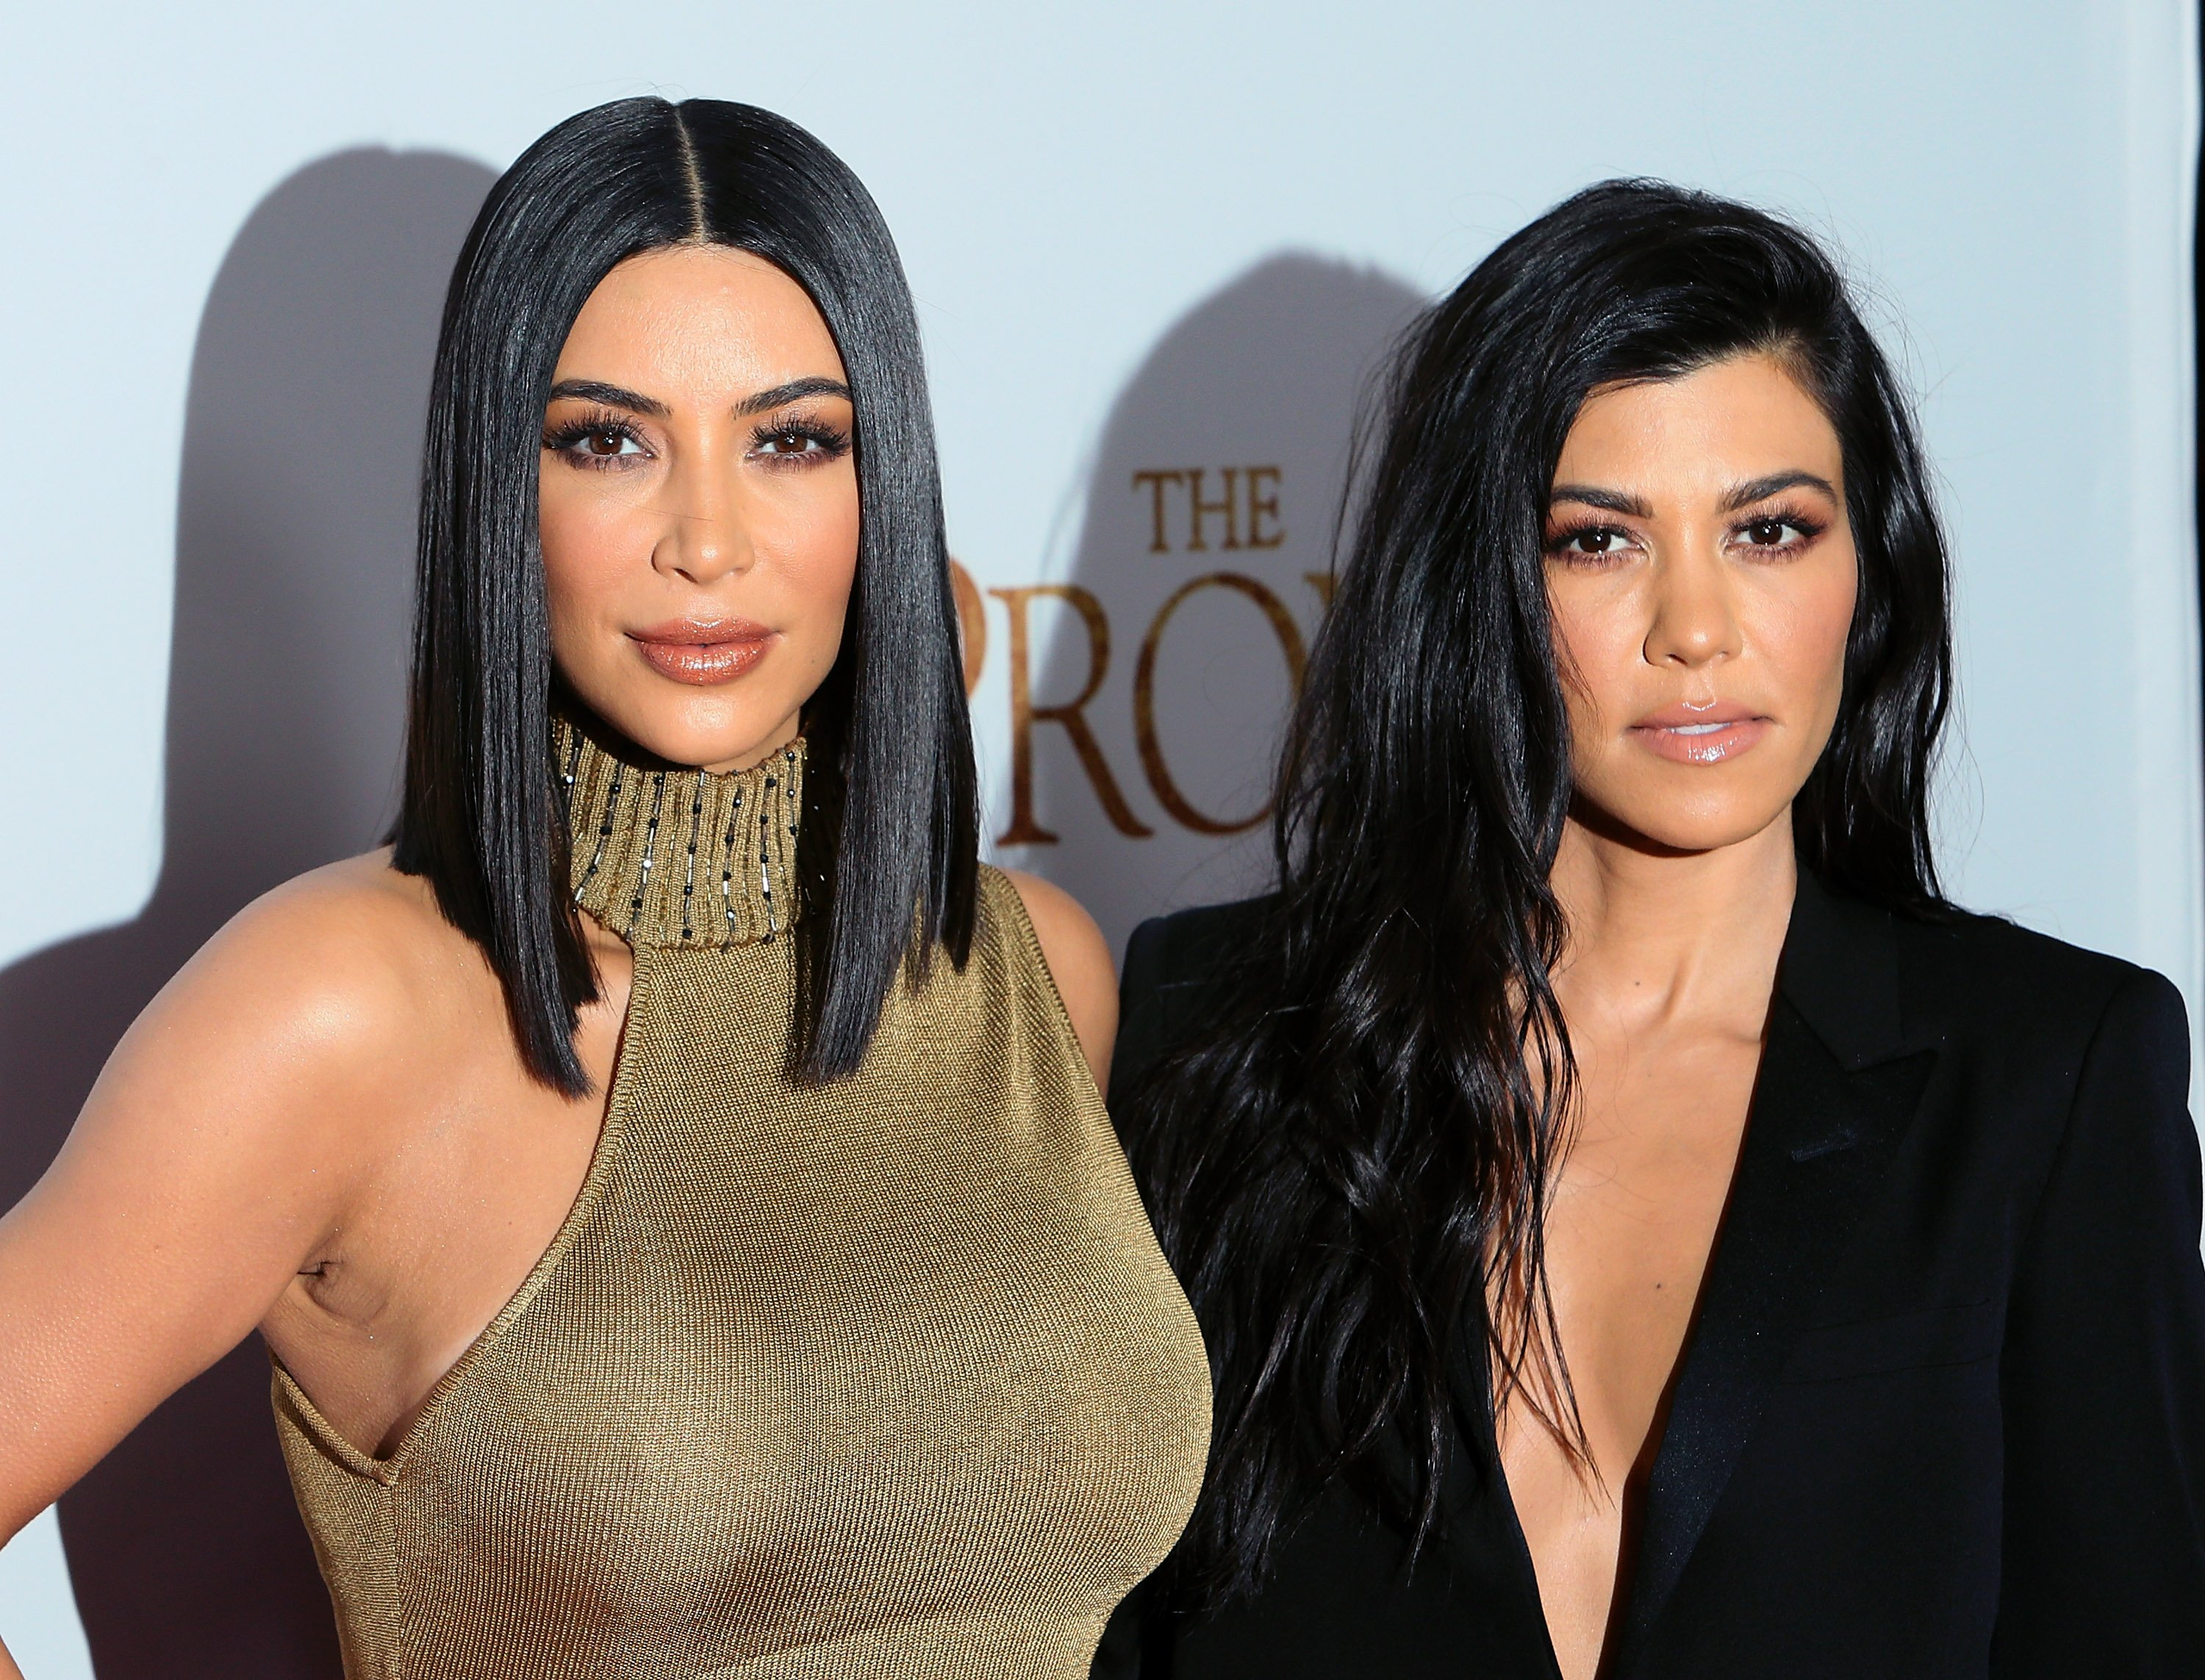 """Kim Kardashian West and Kourtney Kardashian at the premiere of """"The Promise"""" at TCL Chinese Theatre on April 12, 2017 in Hollywood, California. 